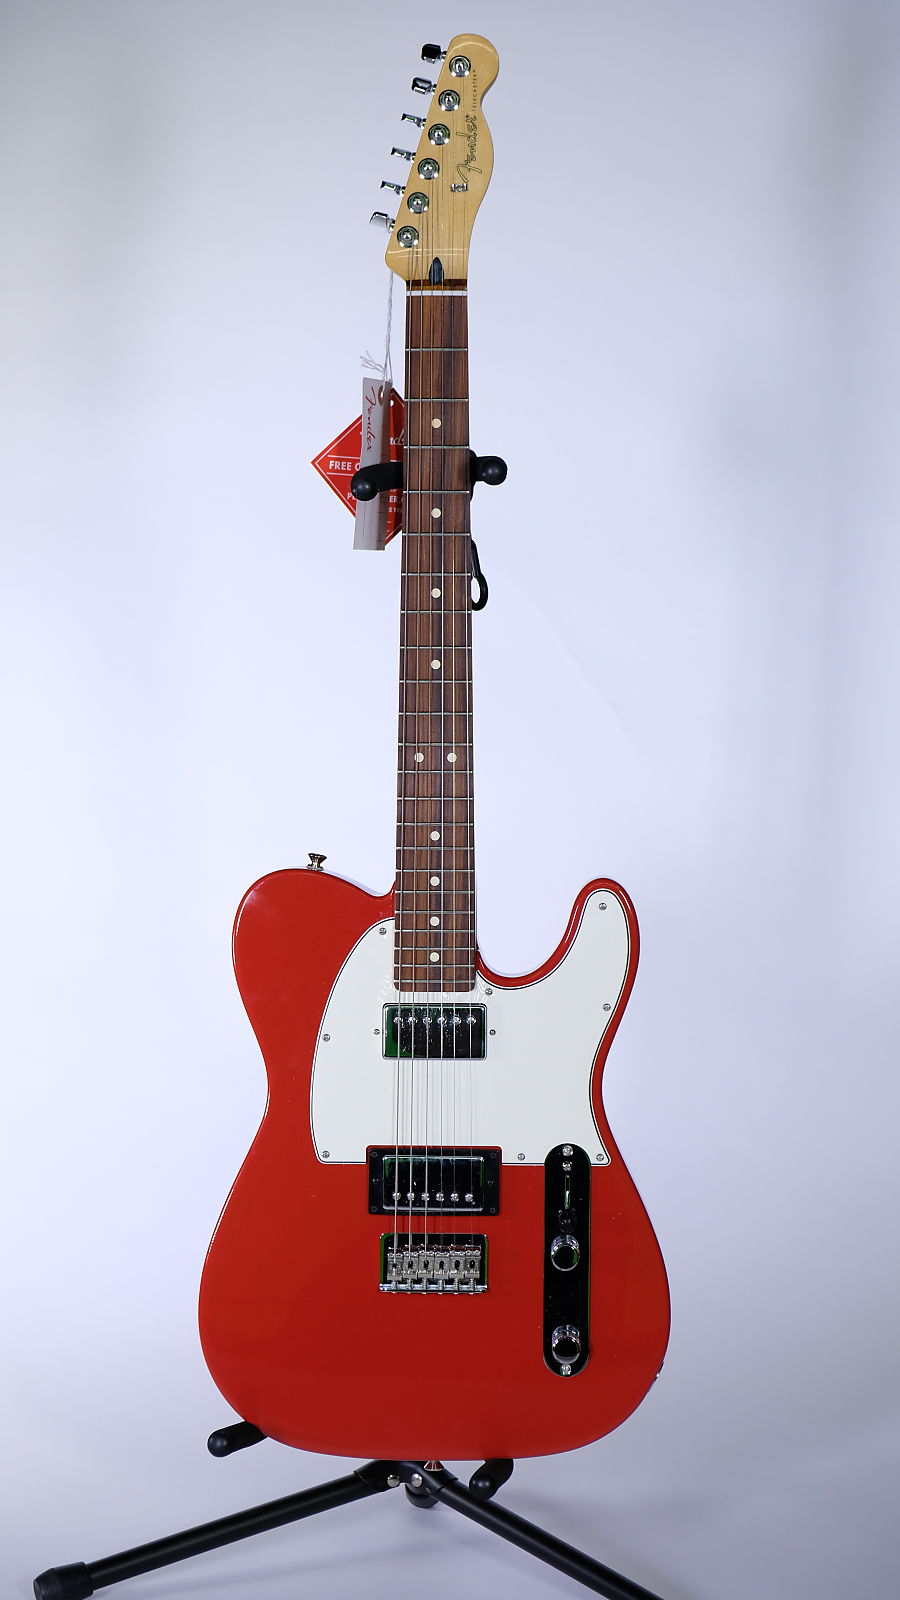 Fender Telecaster Hh >> Fender Player Telecaster Hh Pau Ferro Fingerboard Sonic Red